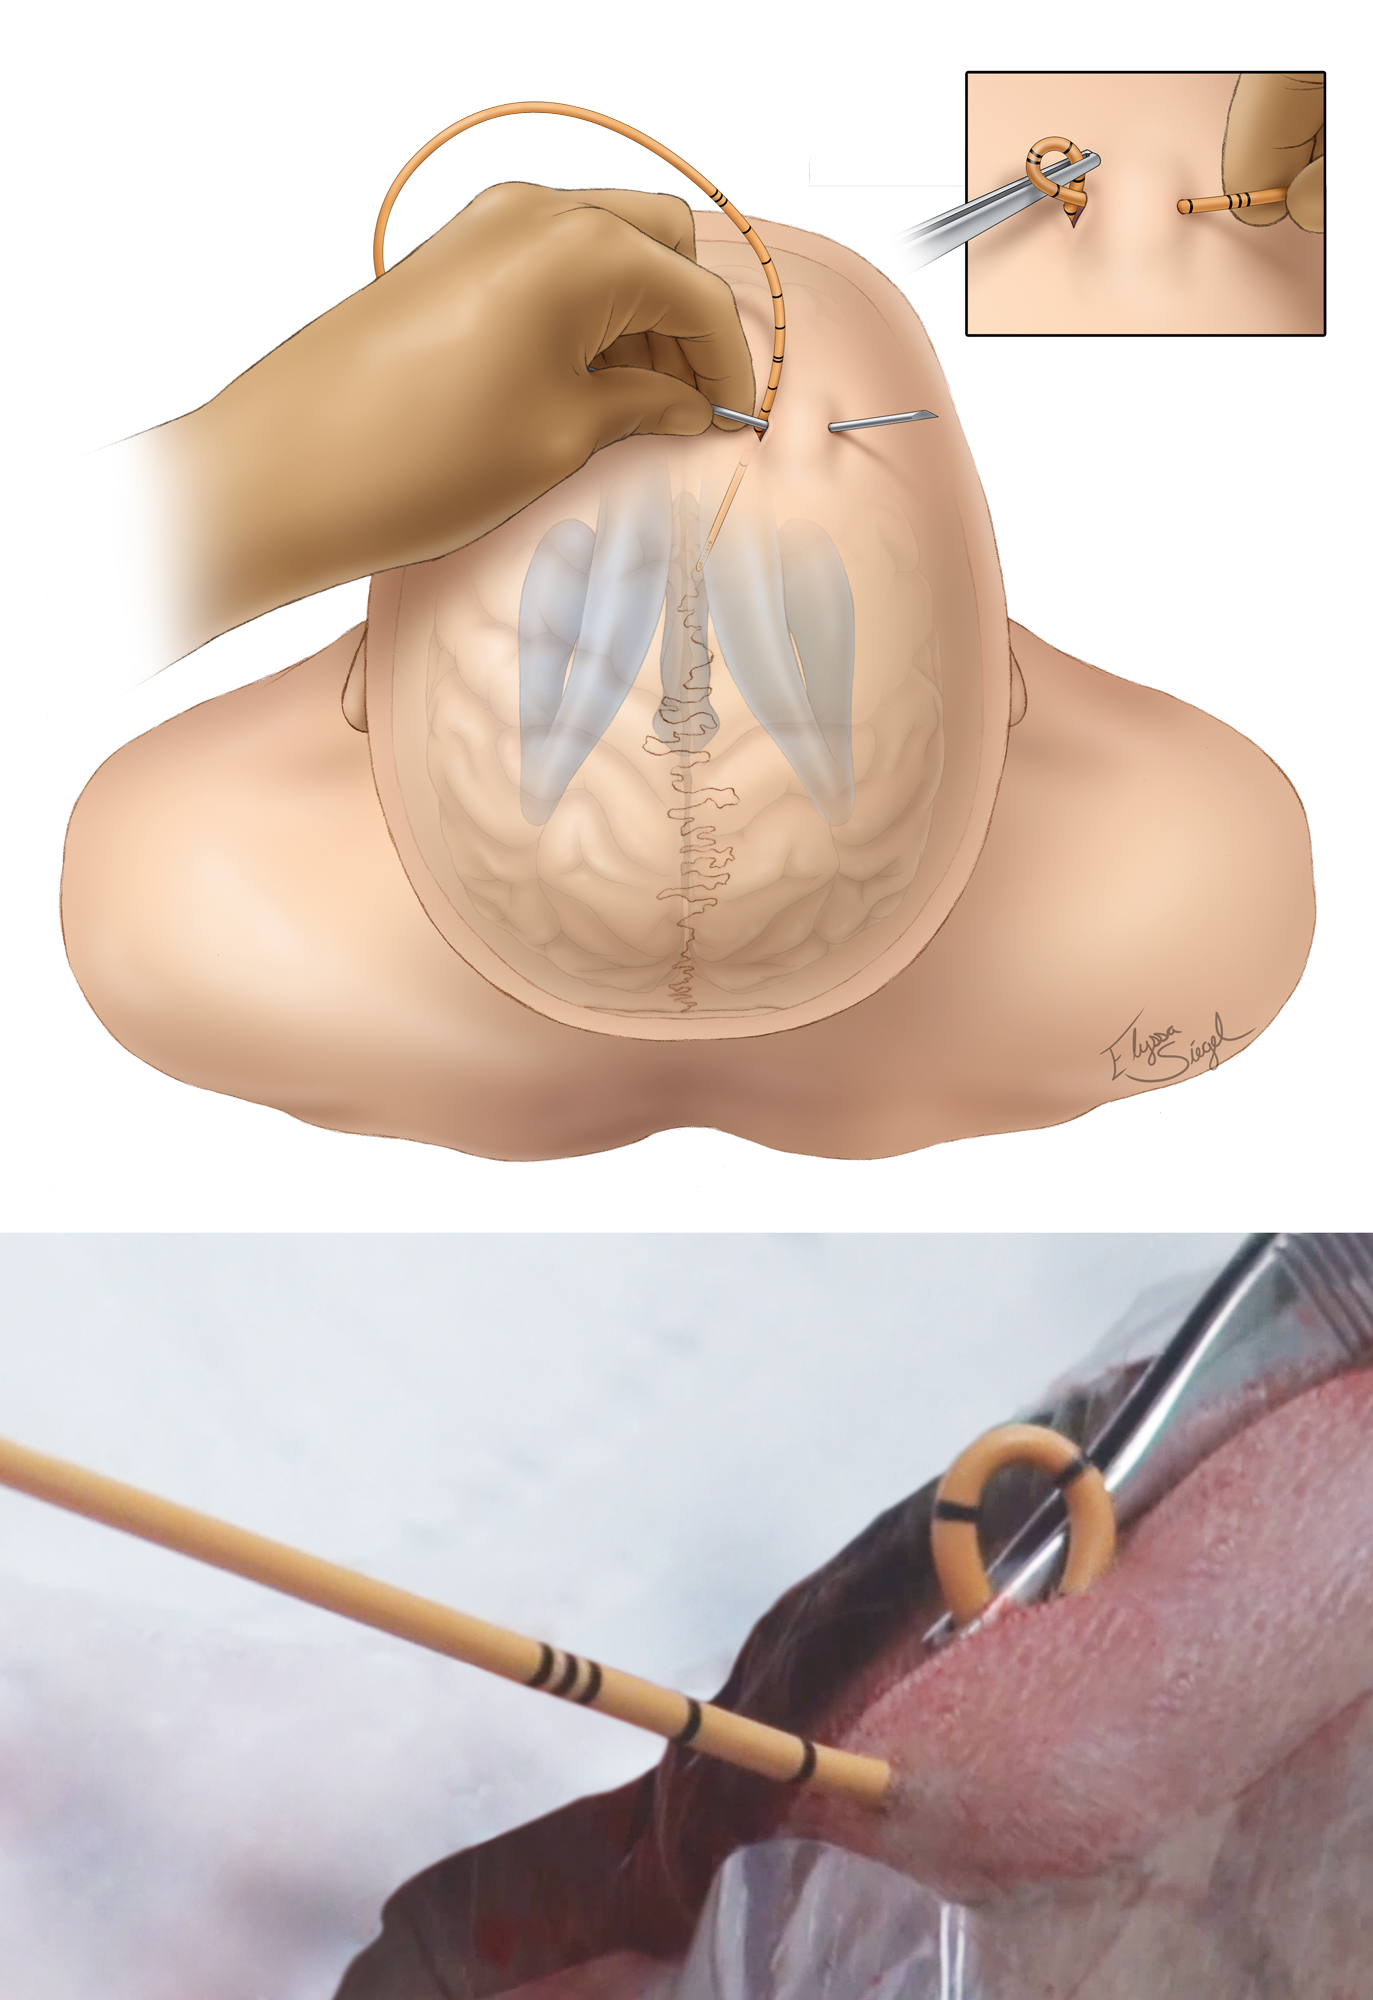 Figure 7: The drain is carefully tunneled under the galea to decrease the risk of infection. A non-toothed forceps instrument is used to hold the drain in place while this is done to minimize the risk of dislodging the catheter or inadvertently pushing it deeper into the ventricle (top inset and bottom photo).